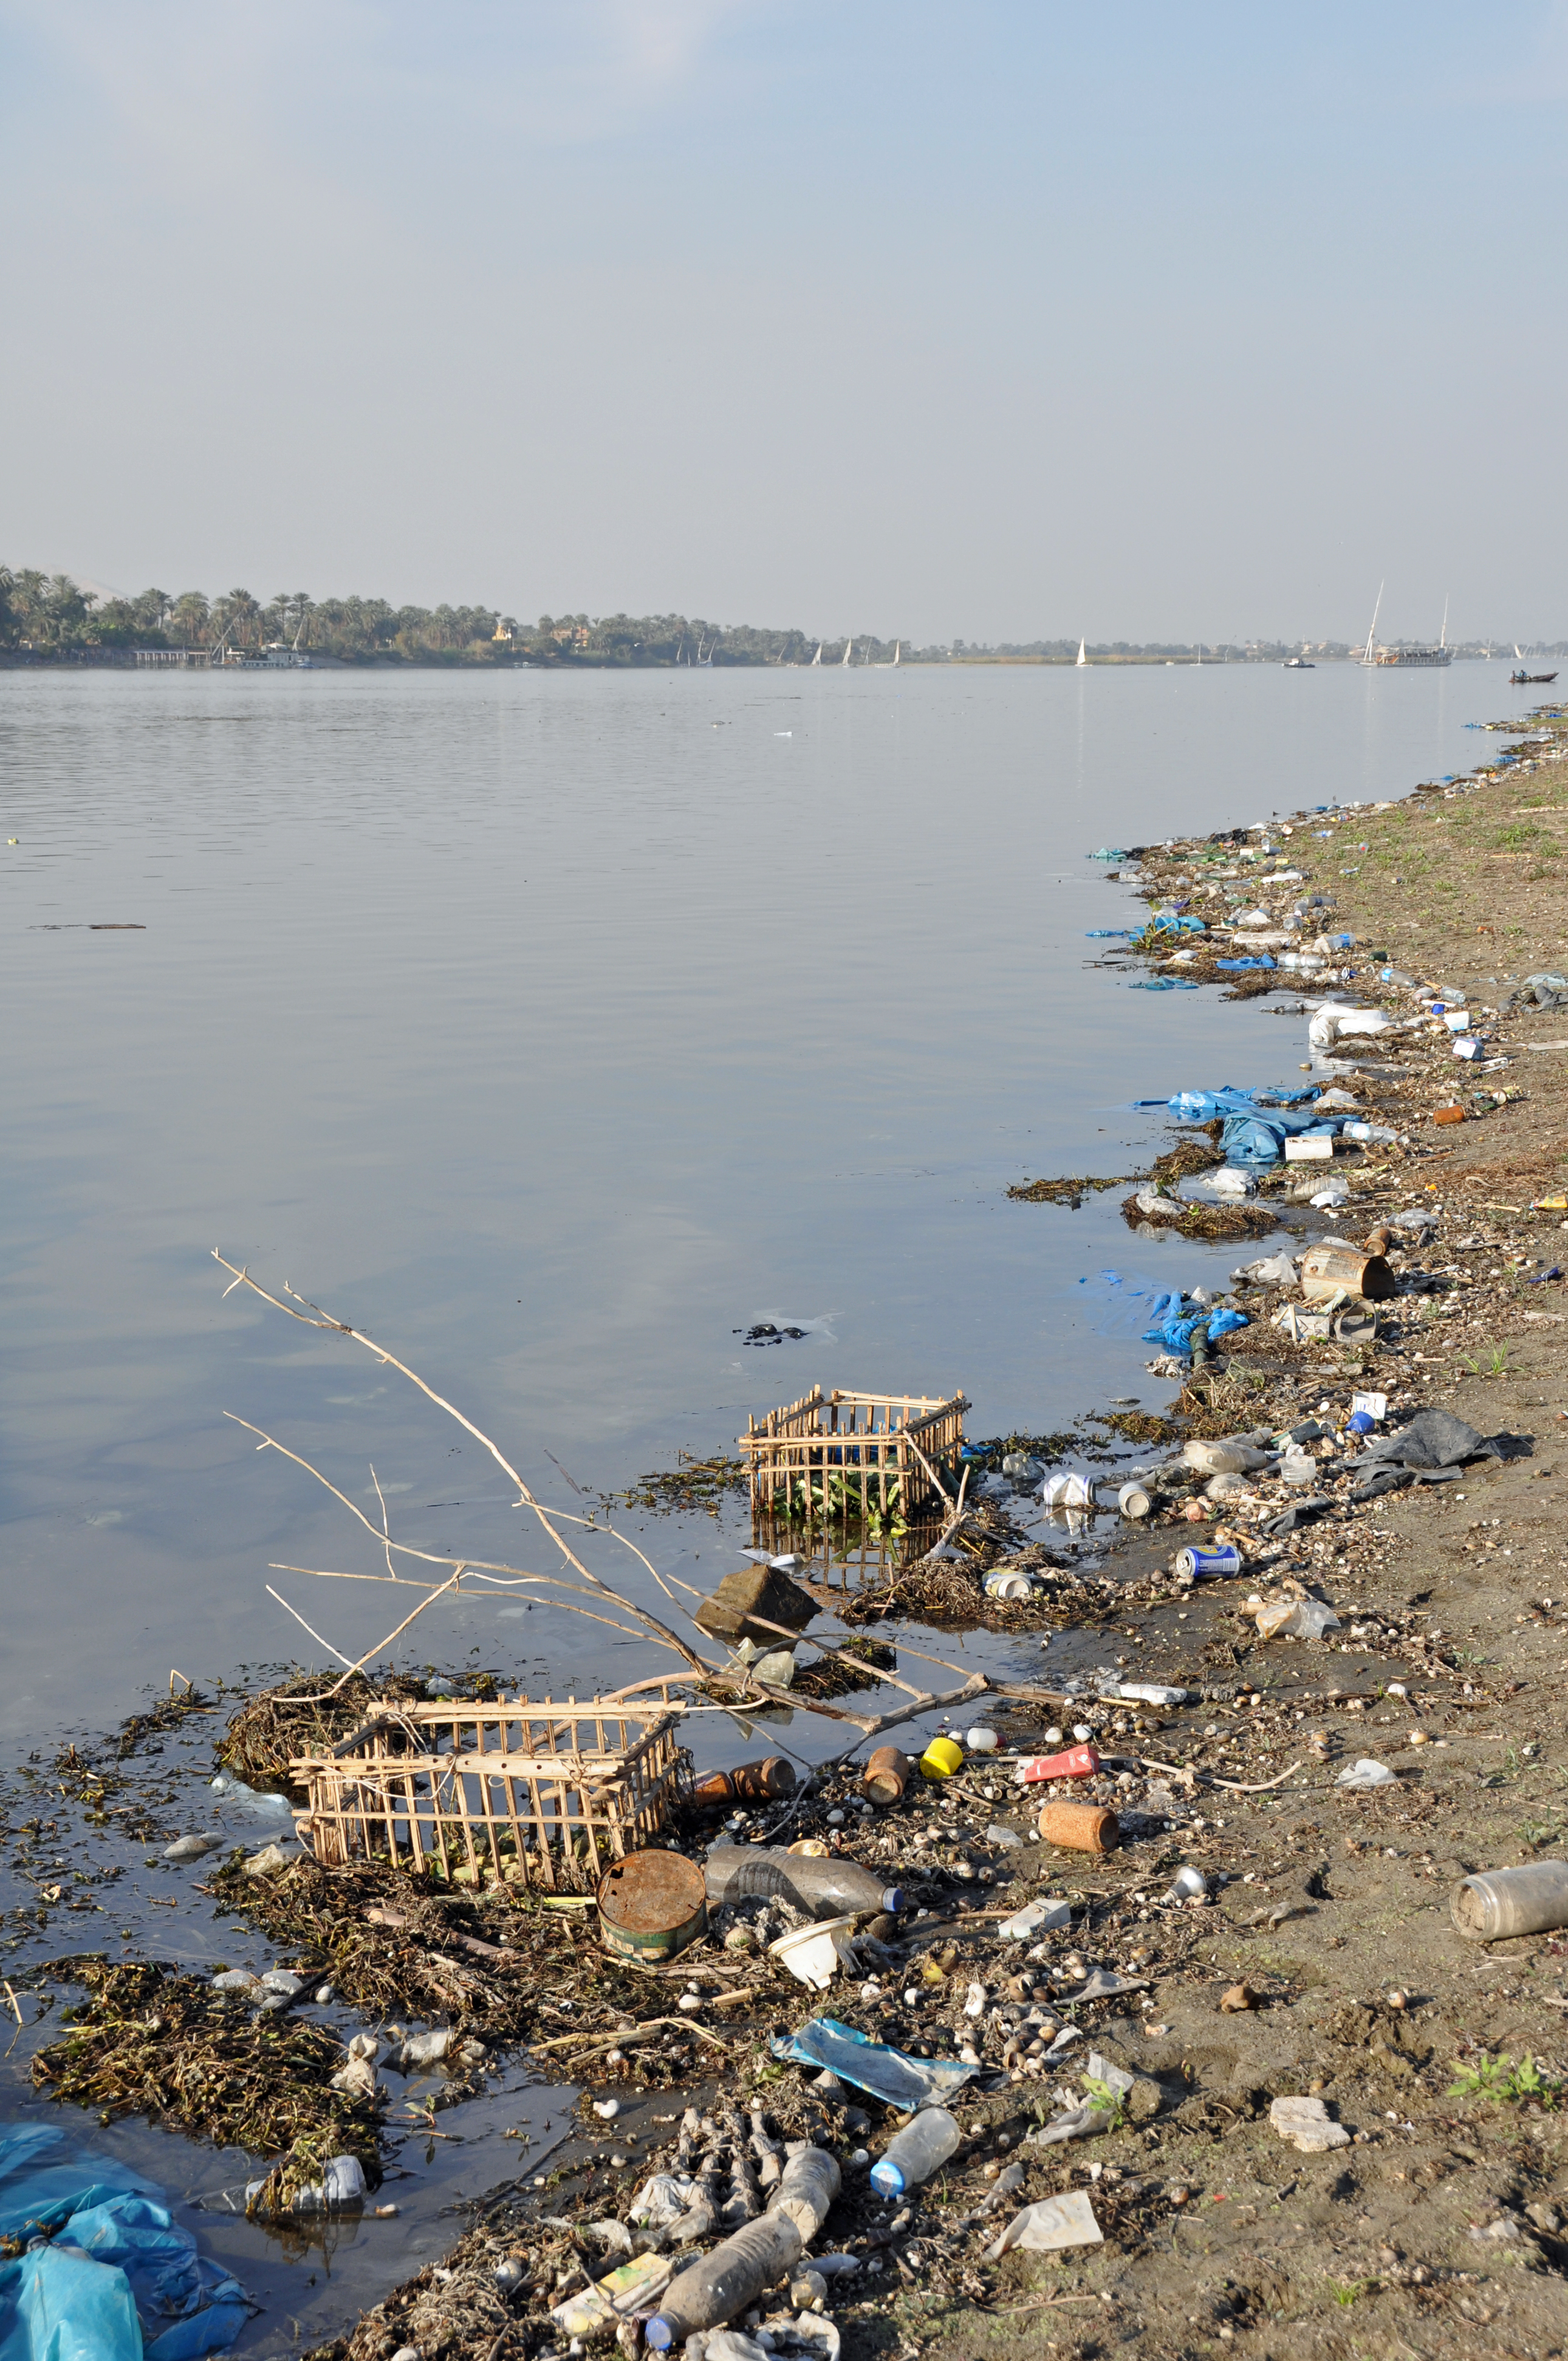 river pollution wikipedia Sewage pollution in rivers is often be caused by sewage treatment plants overflowing through csos (combined sewage overflows) at times of very heavy rainfall excess wastewater is deliberately.